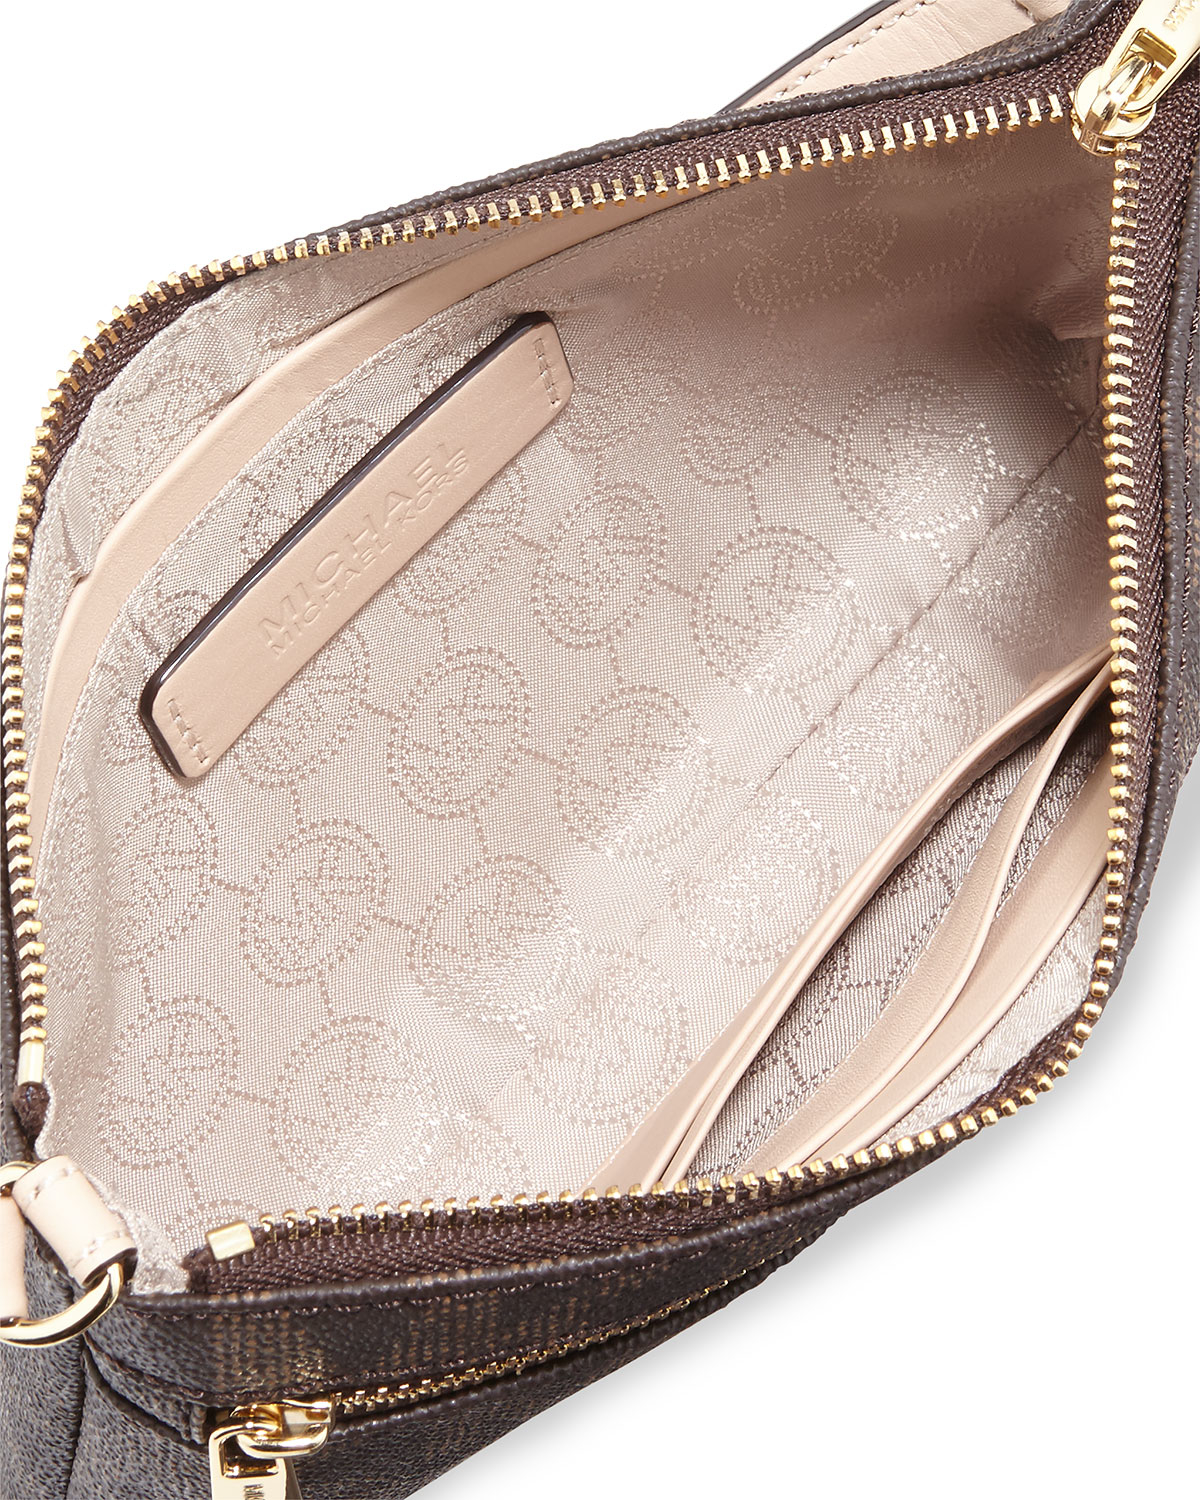 71ab2fd52b8a Gallery. Previously sold at: Neiman Marcus · Women's Michael By Michael  Kors Jet Set